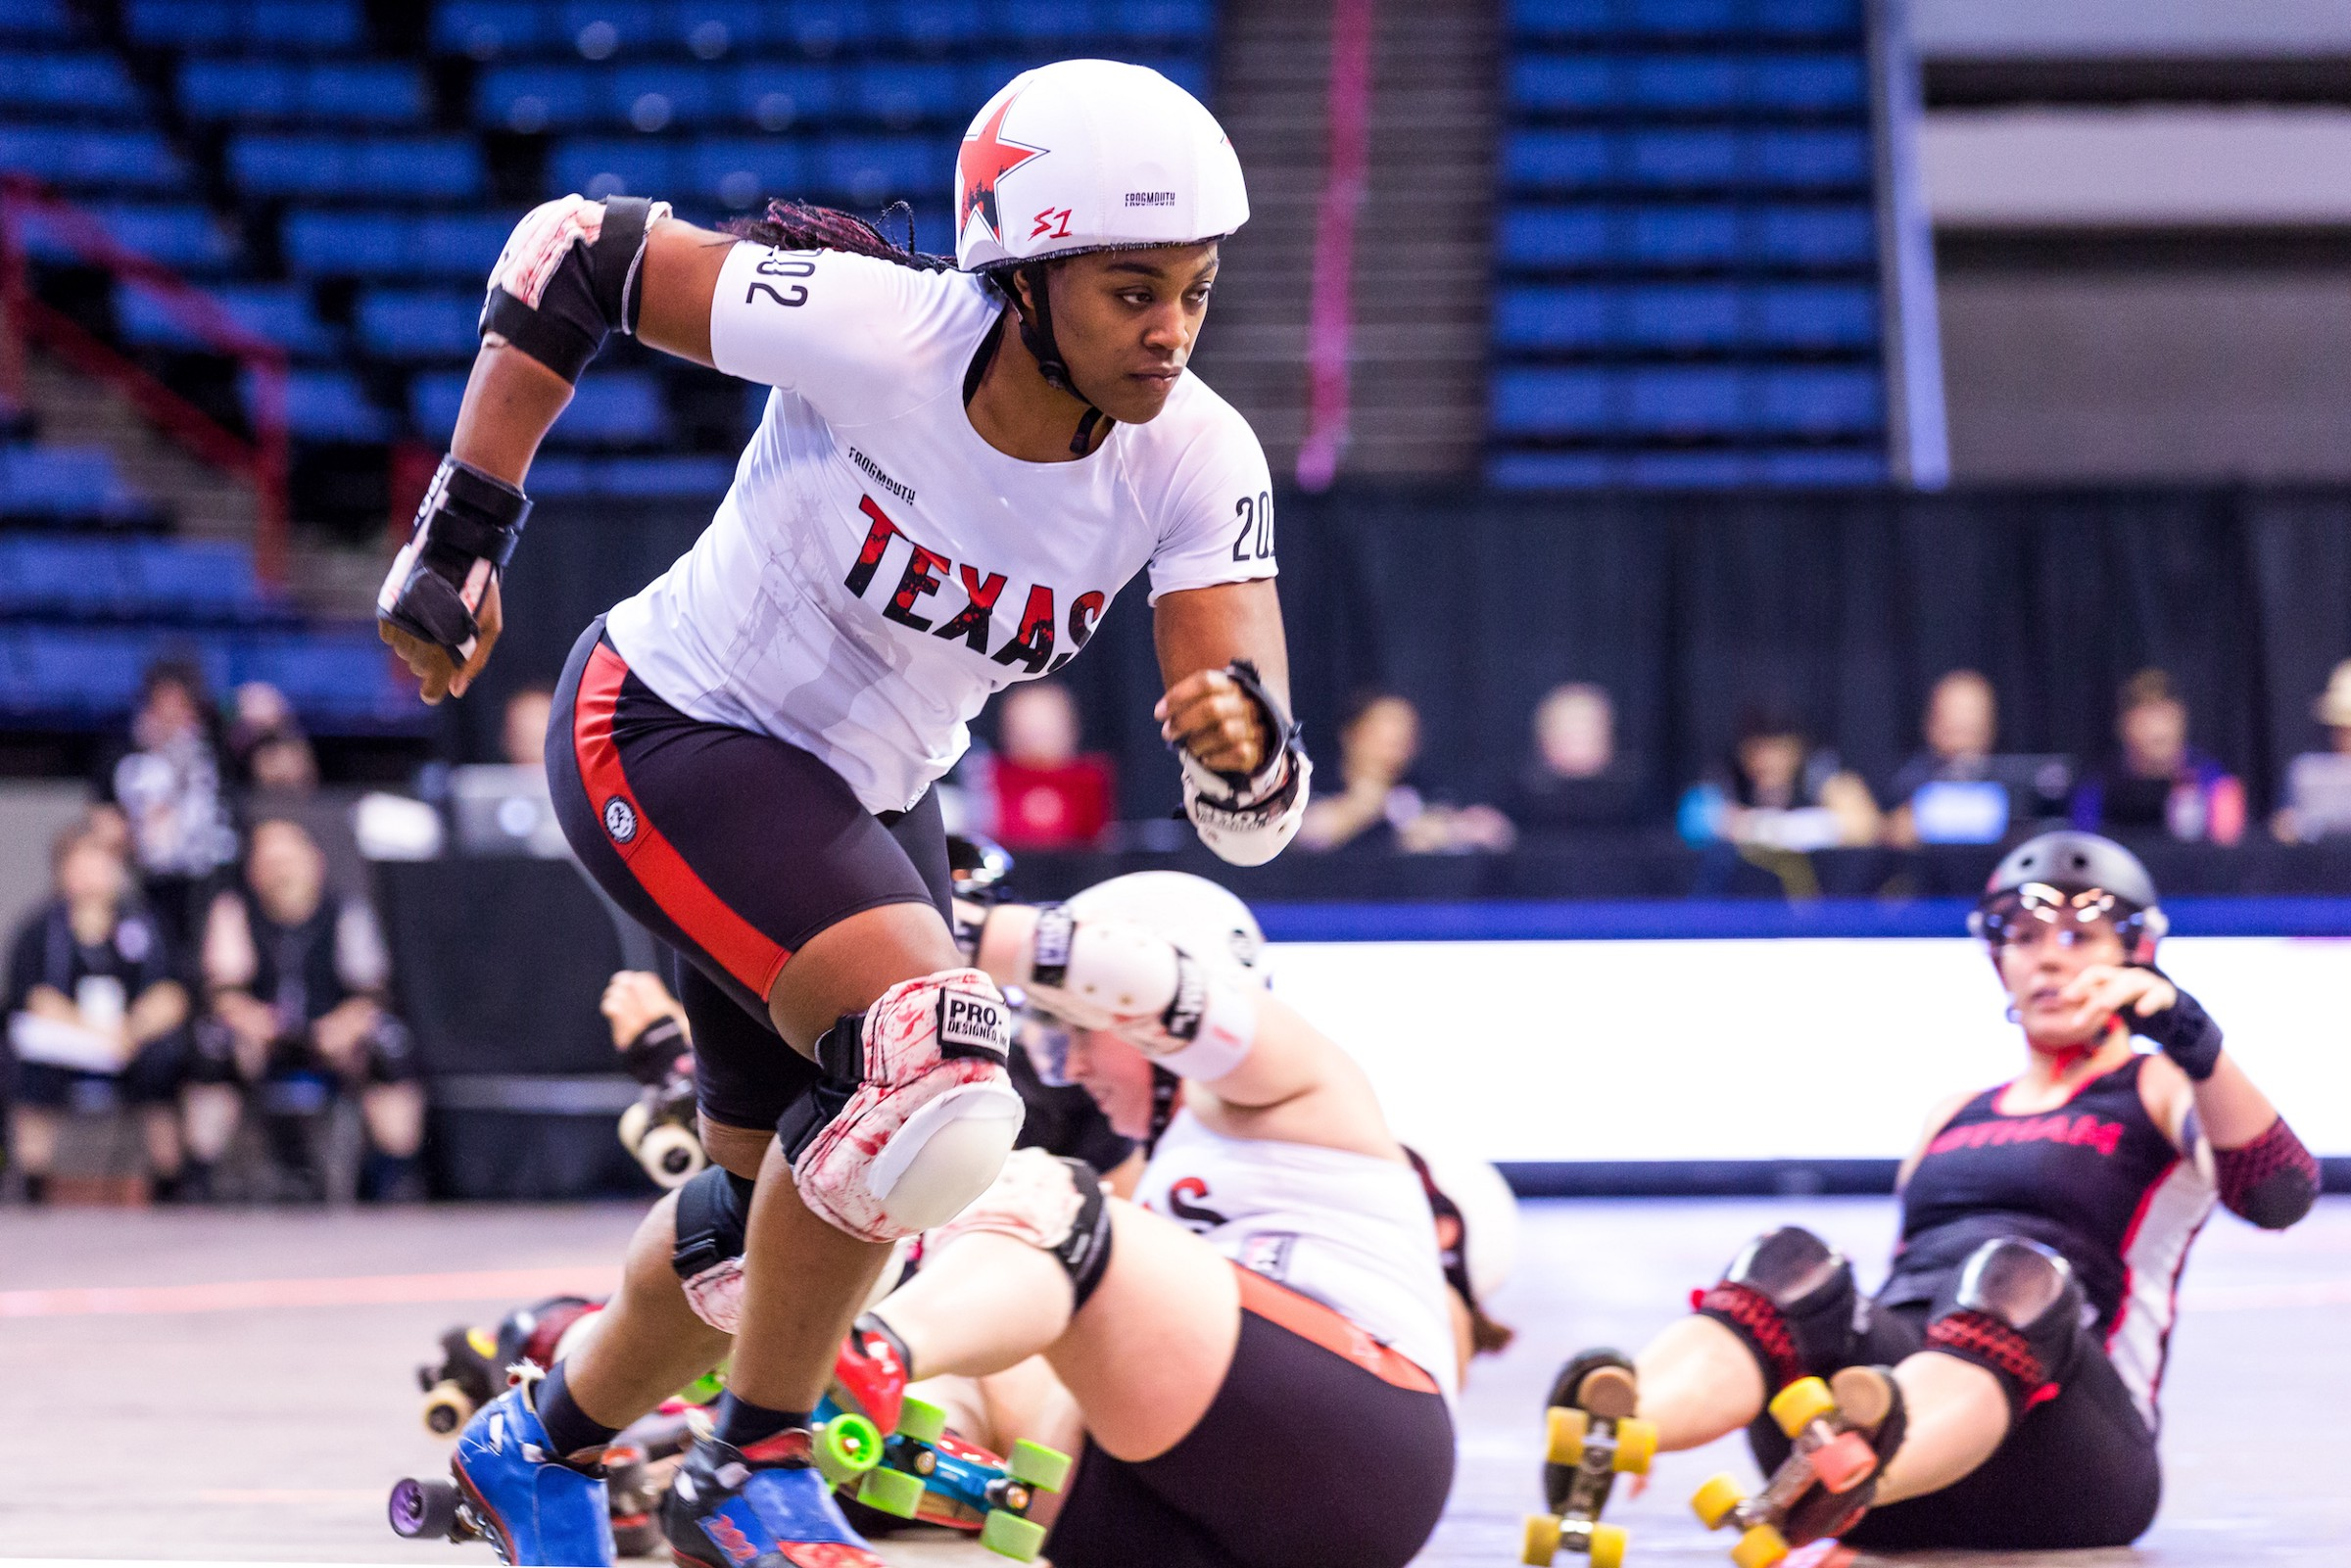 c1090af4173 Freight Train of Texas Rollergirls at the 2018 WFTDA International  Championships, where half the teams wore Frogmouth uniforms. Picture: John  Blood